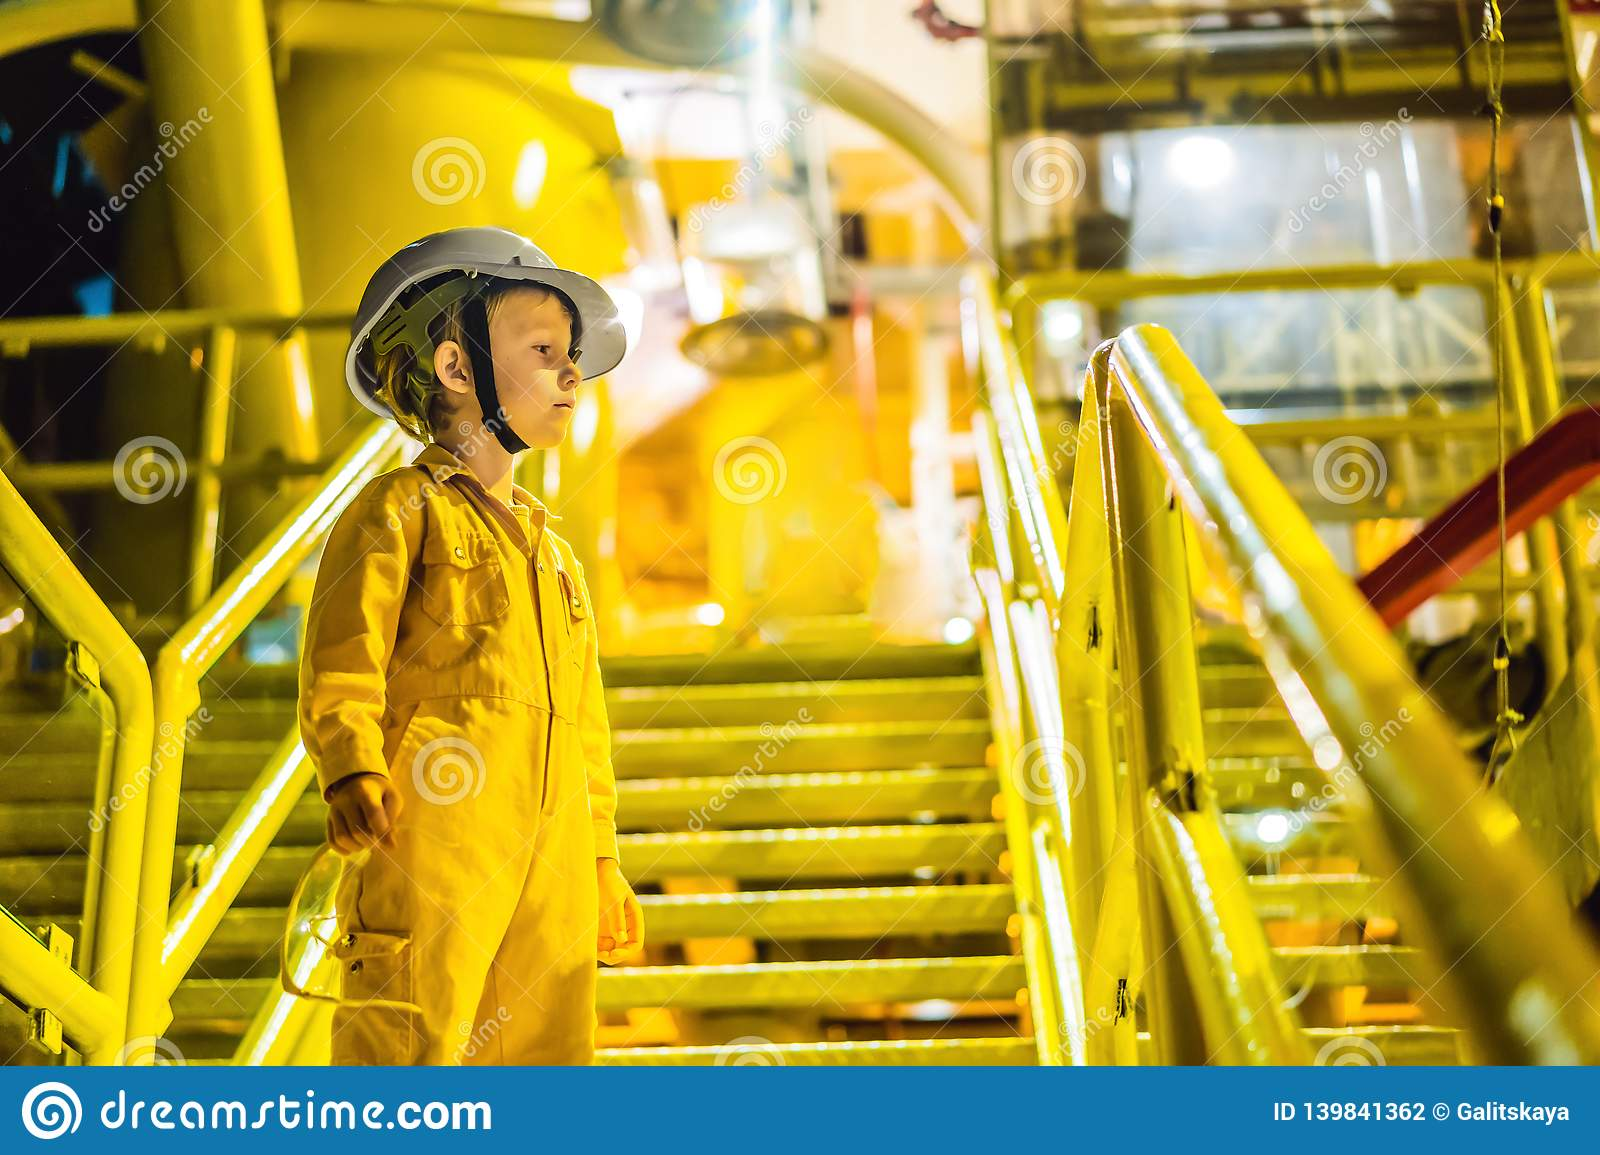 Boy operator recording operation of oil and gas process at oil and rig plant, offshore oil and gas industry, offshore